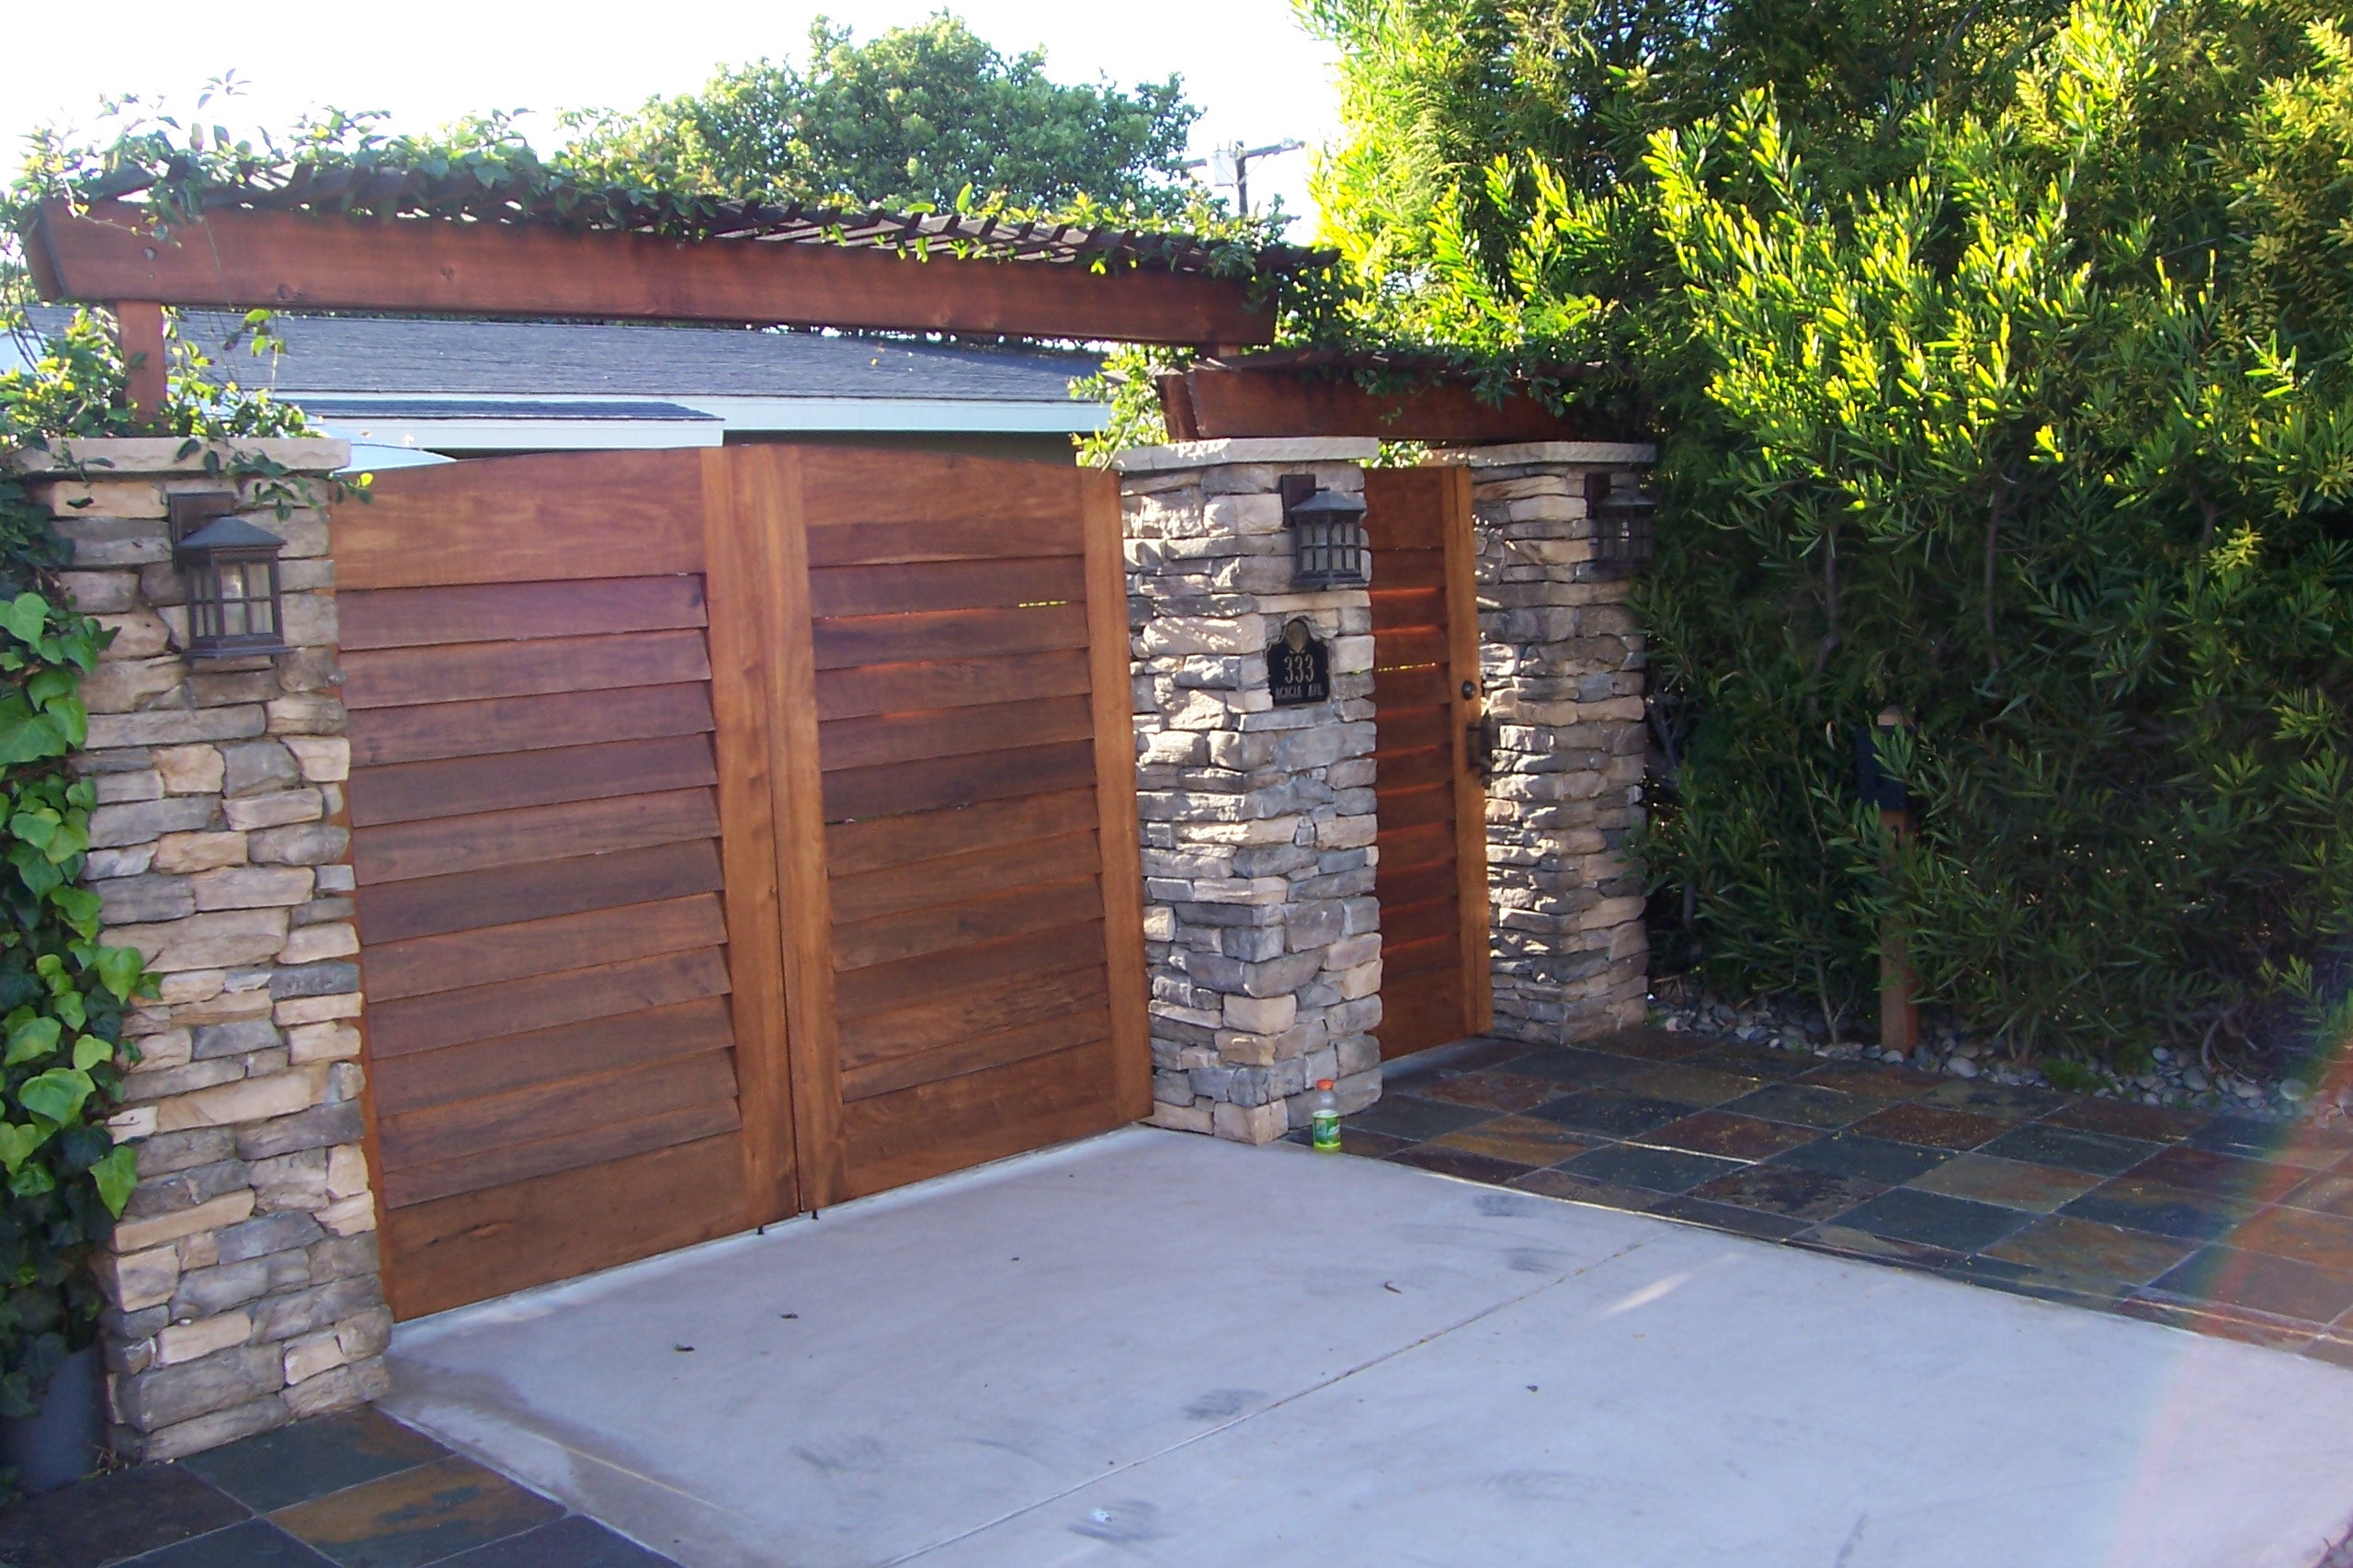 Masonry Fence Design Creative fences gates and enclosures in san diego part 2 gate design with wooden driveway and people gates workwithnaturefo